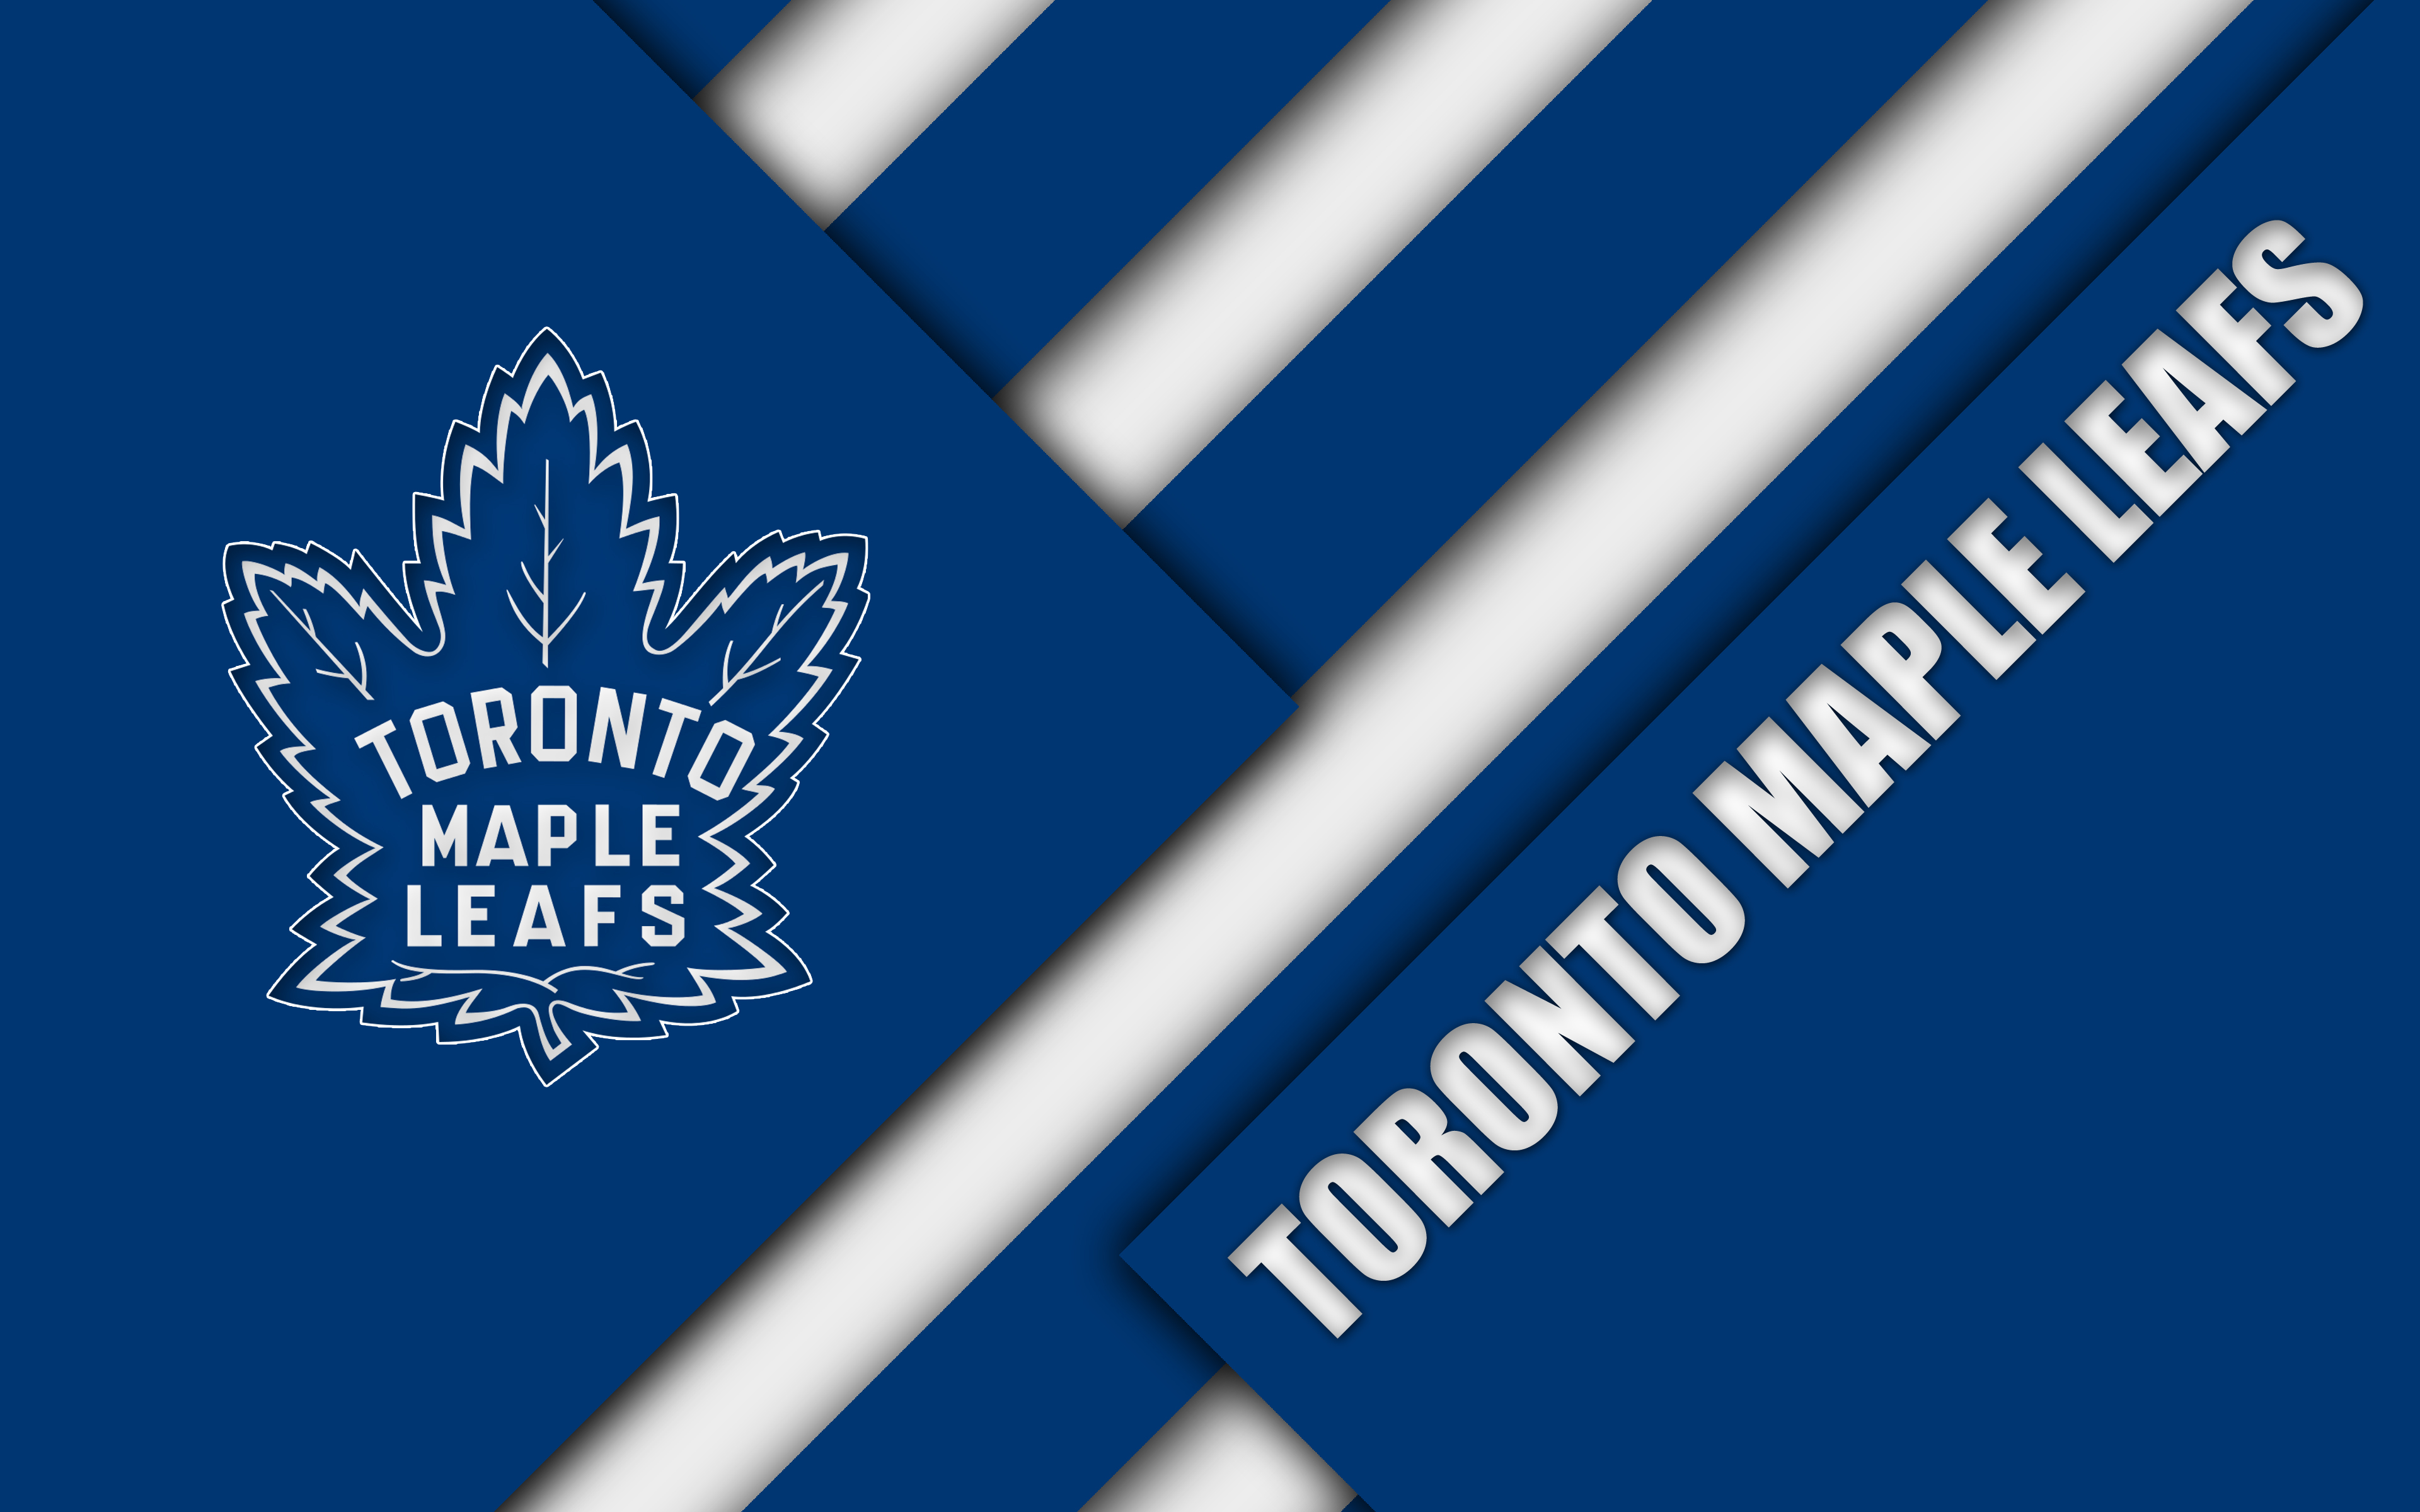 Toronto Maple Leafs 4k Ultra Hd Wallpaper Background Image 3840x2400 Id 982477 Wallpaper Abyss